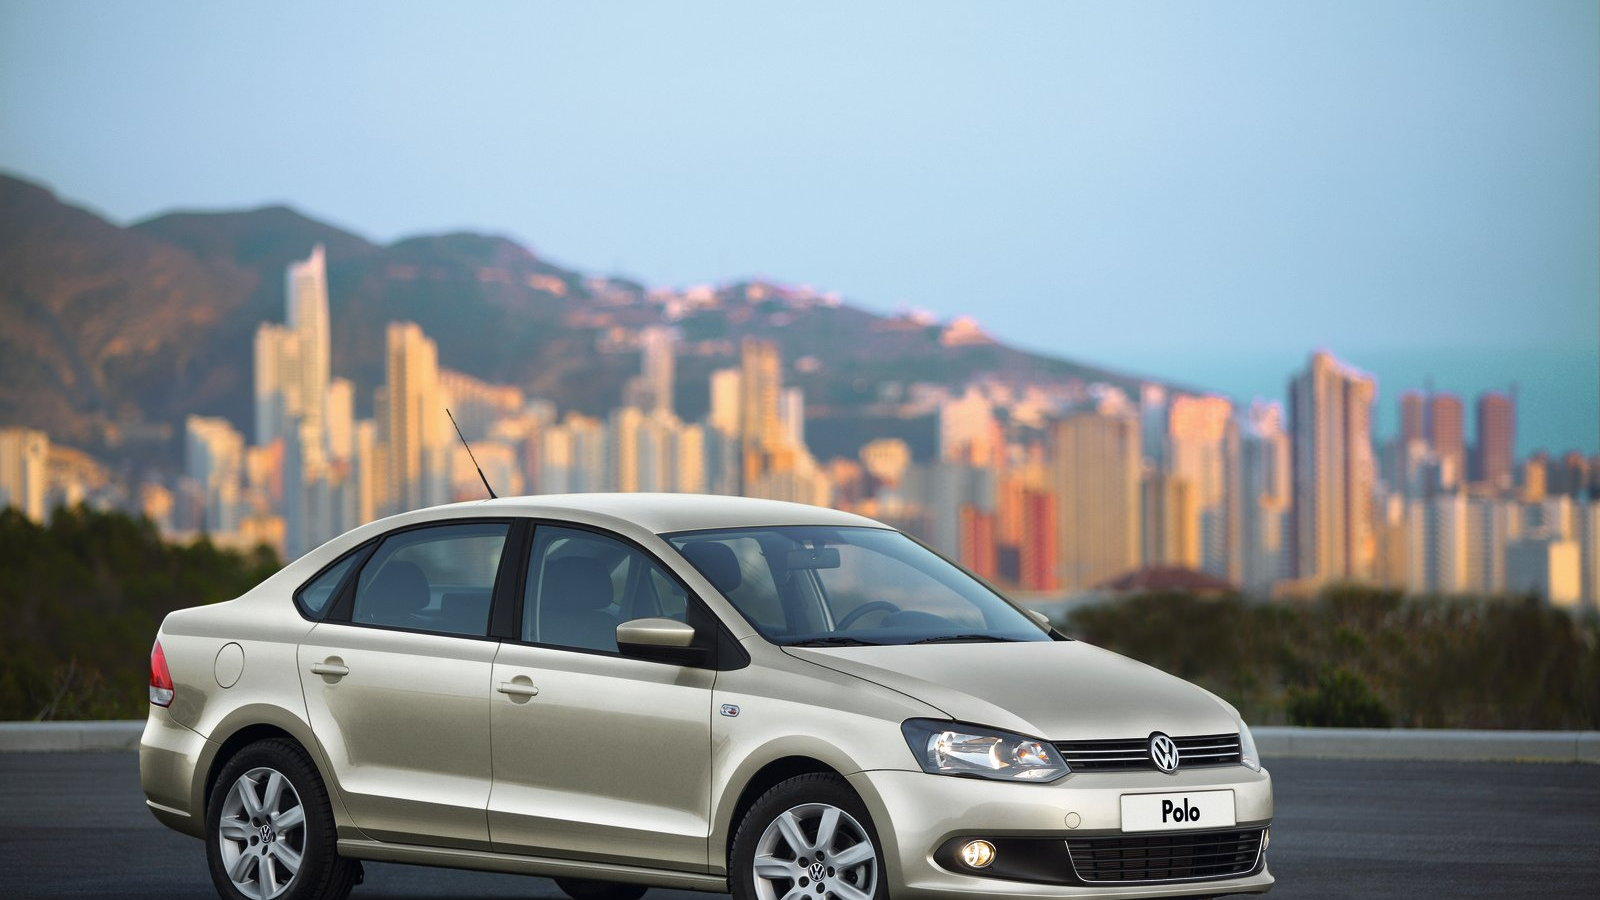 2011 Volkswagen Polo Sedan unveiled in Russia